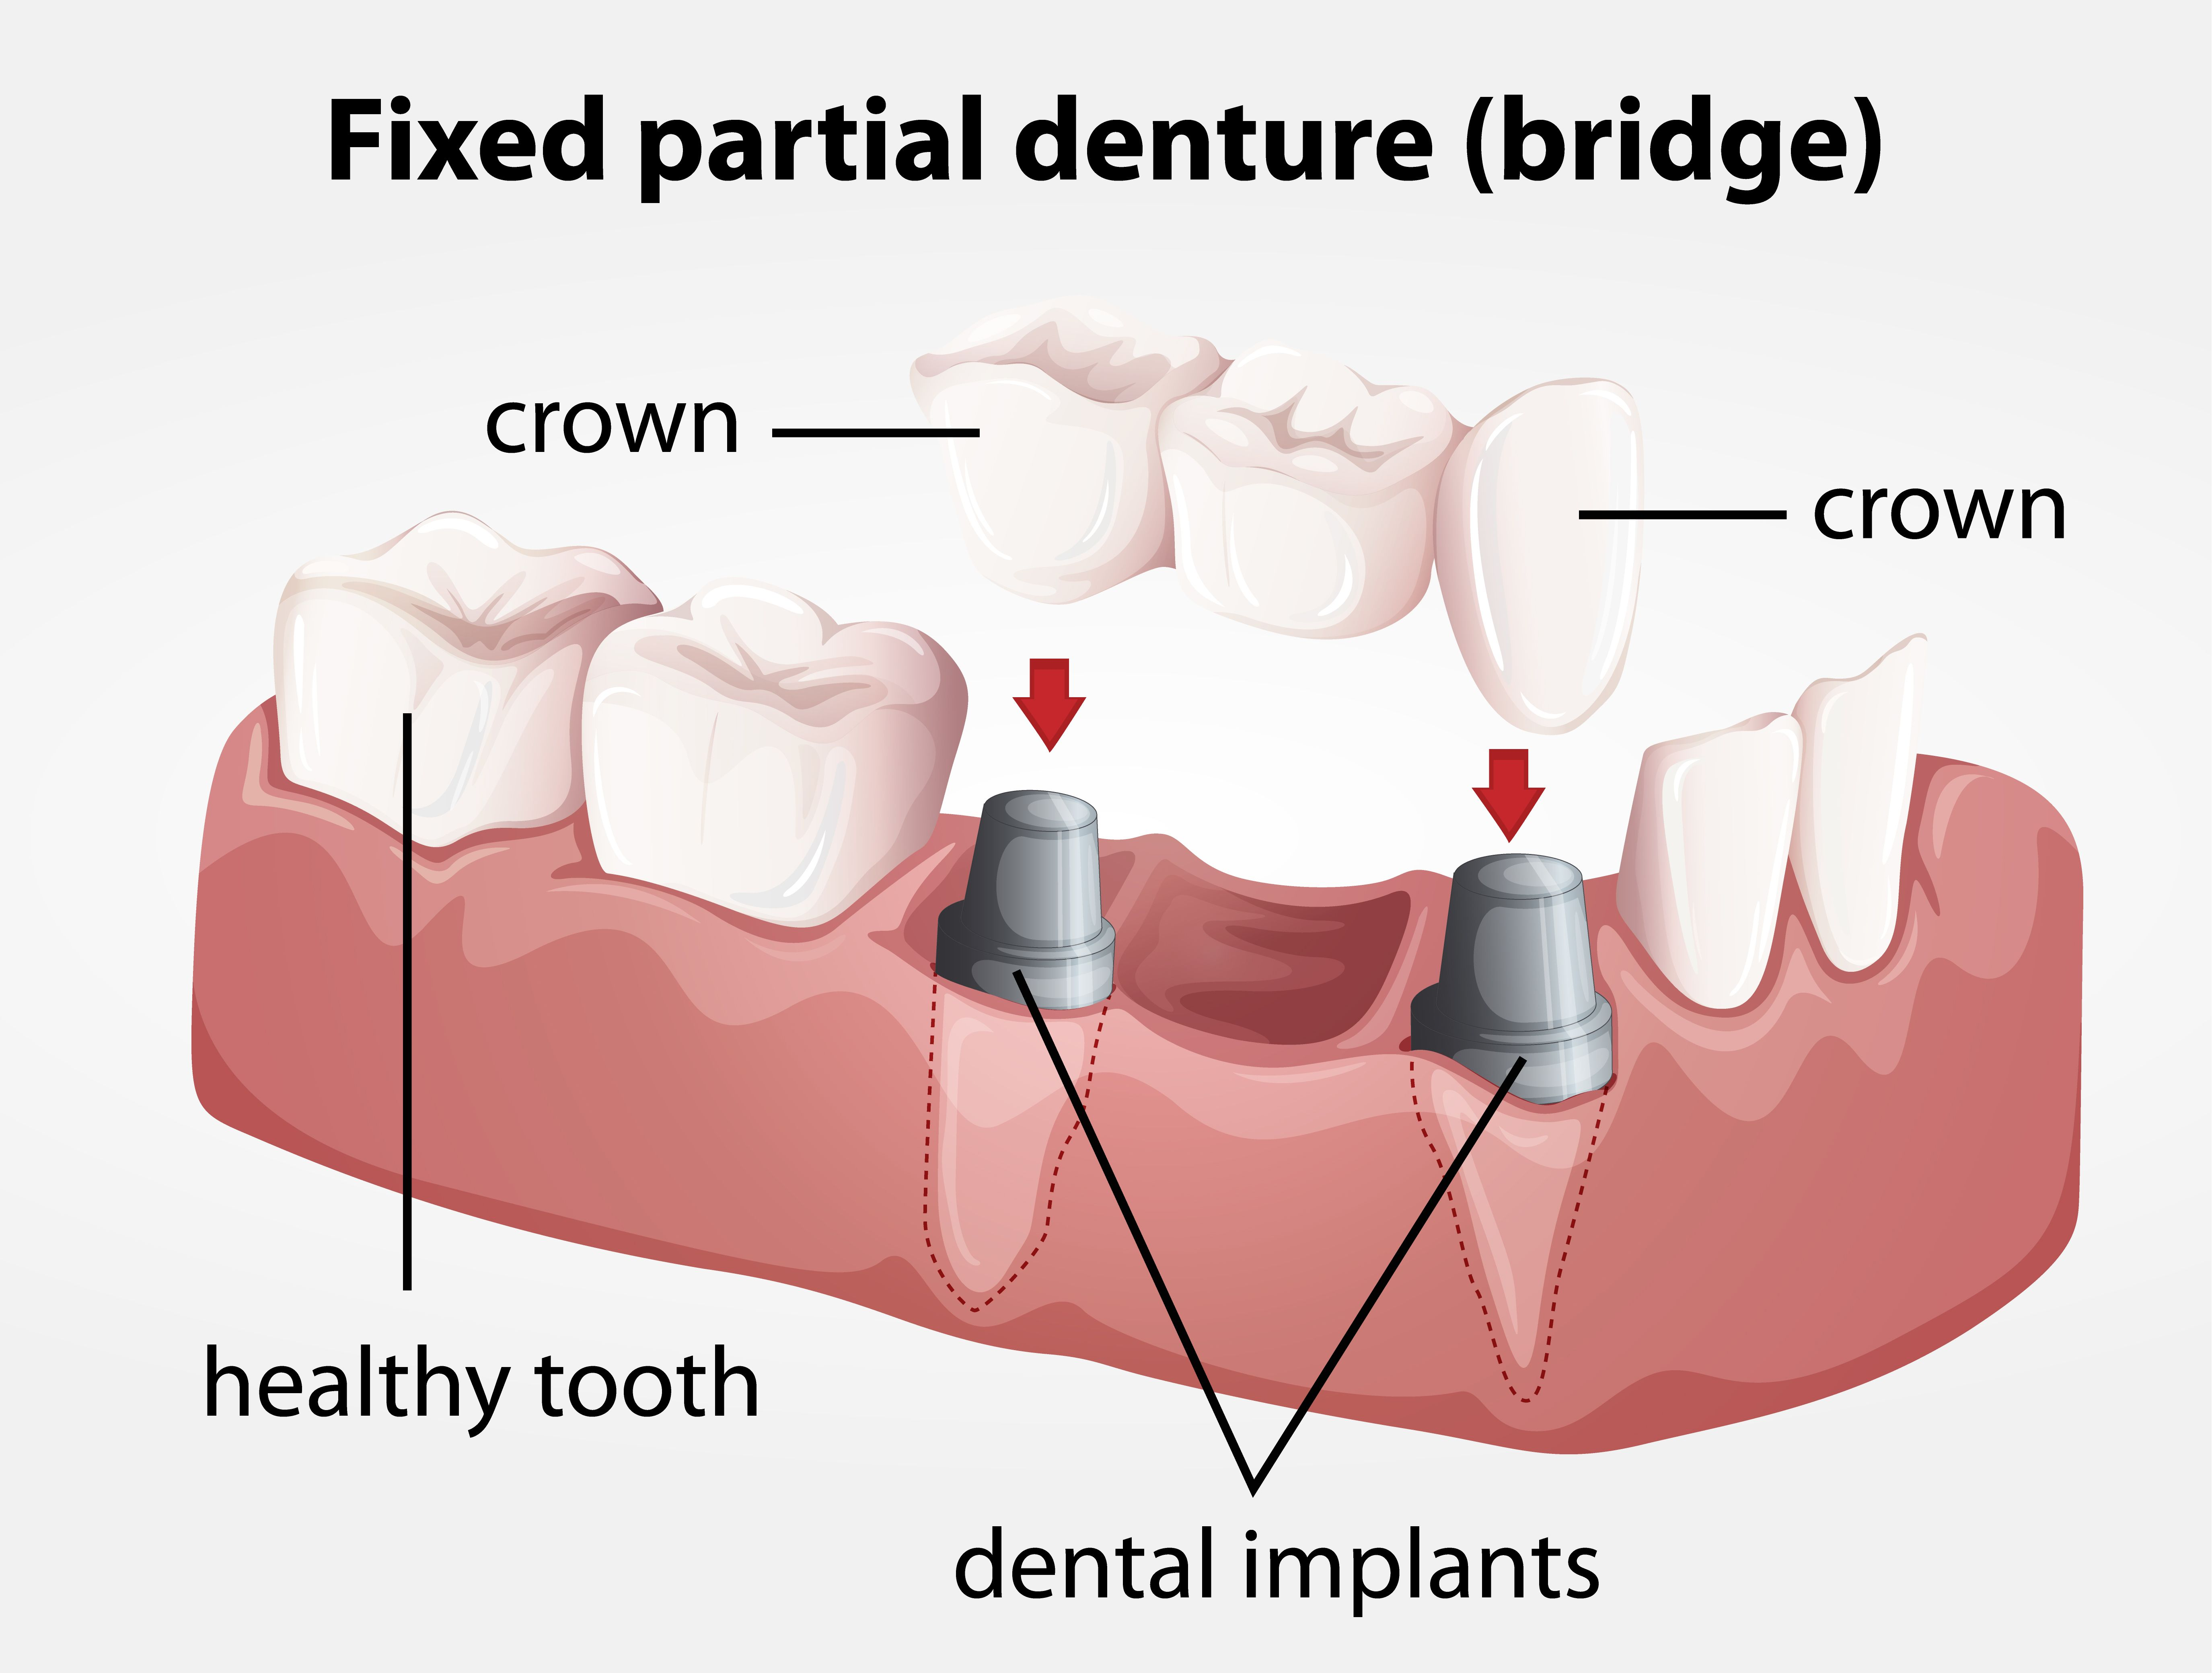 medium resolution of bridge as the name suggests helps to connect the gap left by a missing tooth or teeth this imbalance caused by missing teeth if remains unchecked can